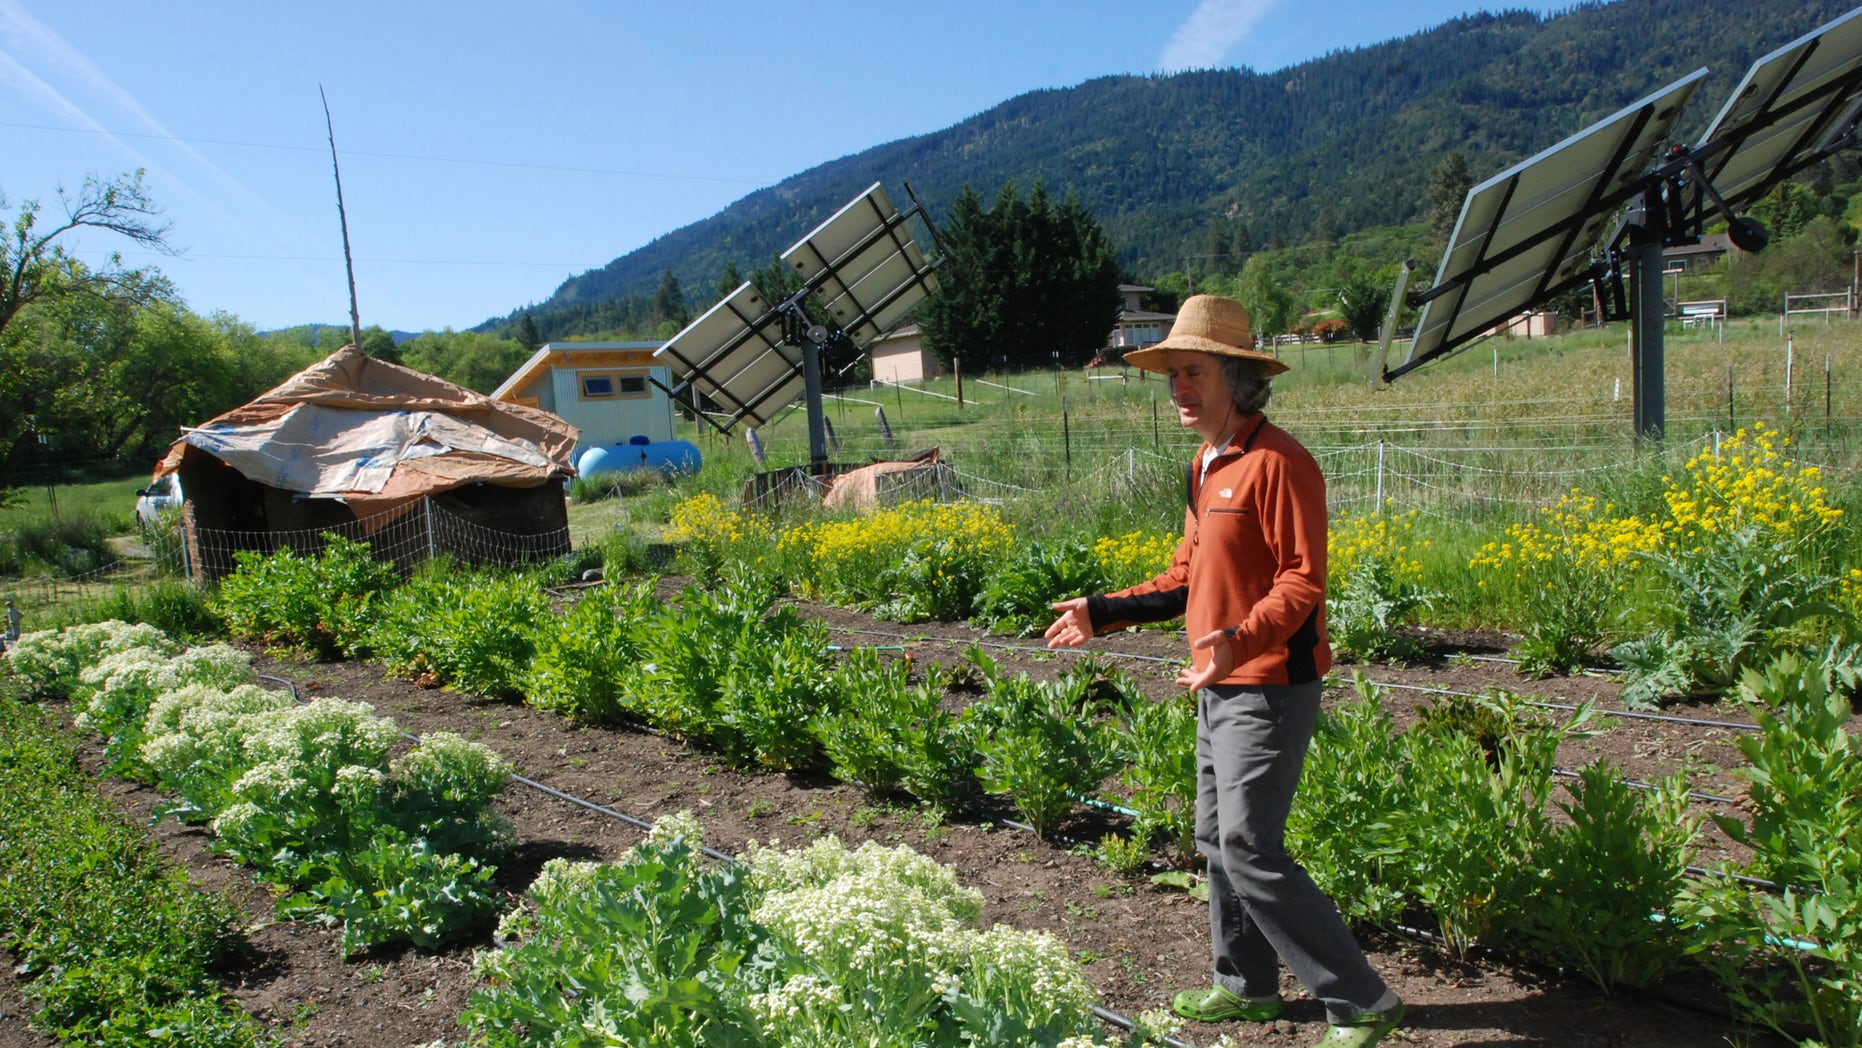 May 12, 2014: Chuck Burr explains his organic seed growing techniques on his farm outside Ashland, Ore.